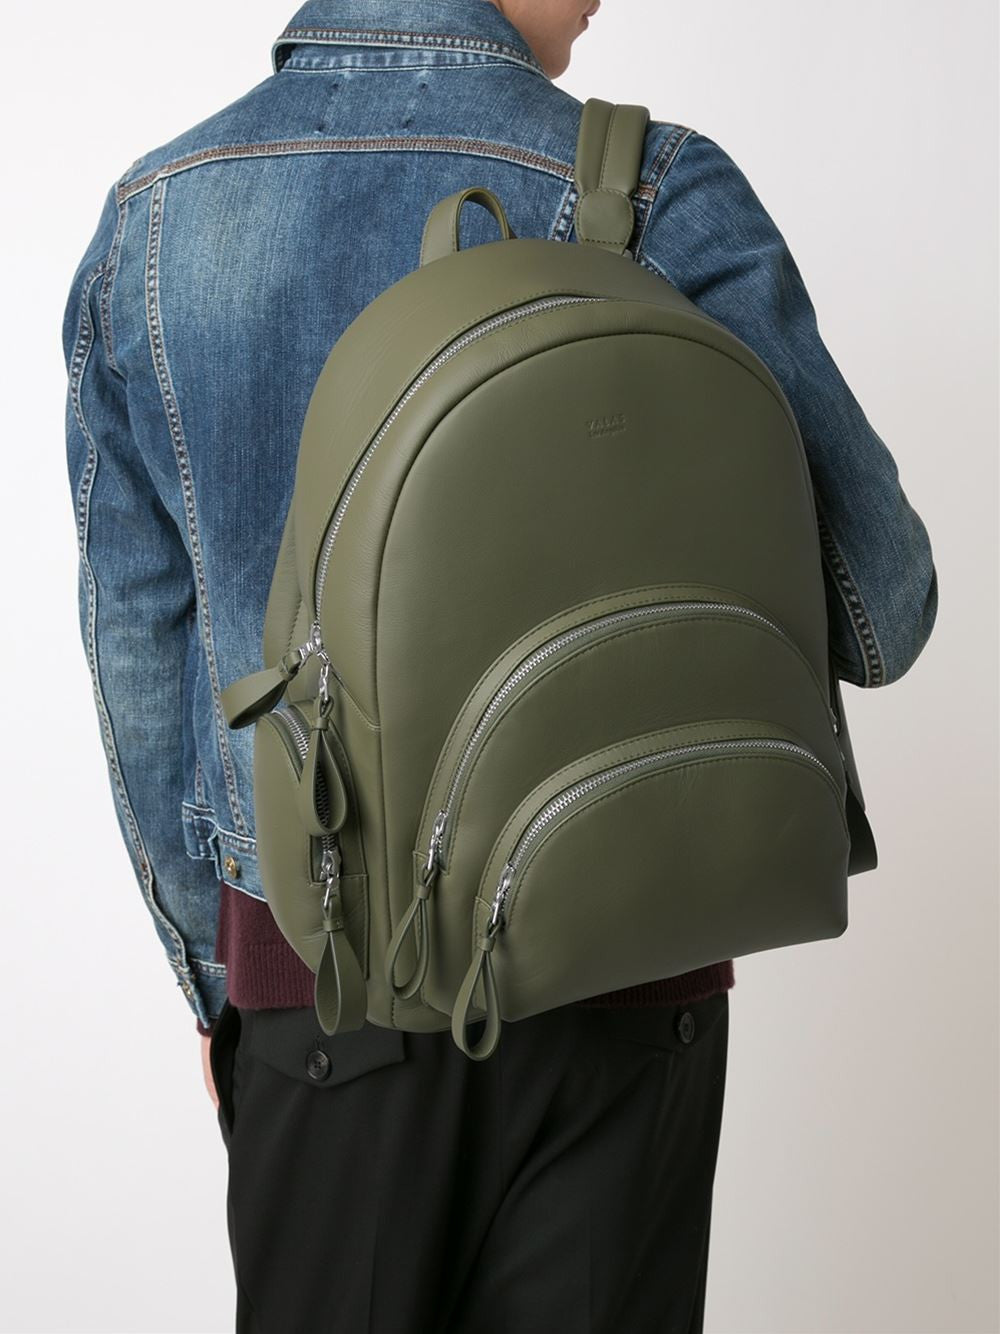 Leather 'Rockefeller' Backpack | VLSRO001 ROCKEFELLER